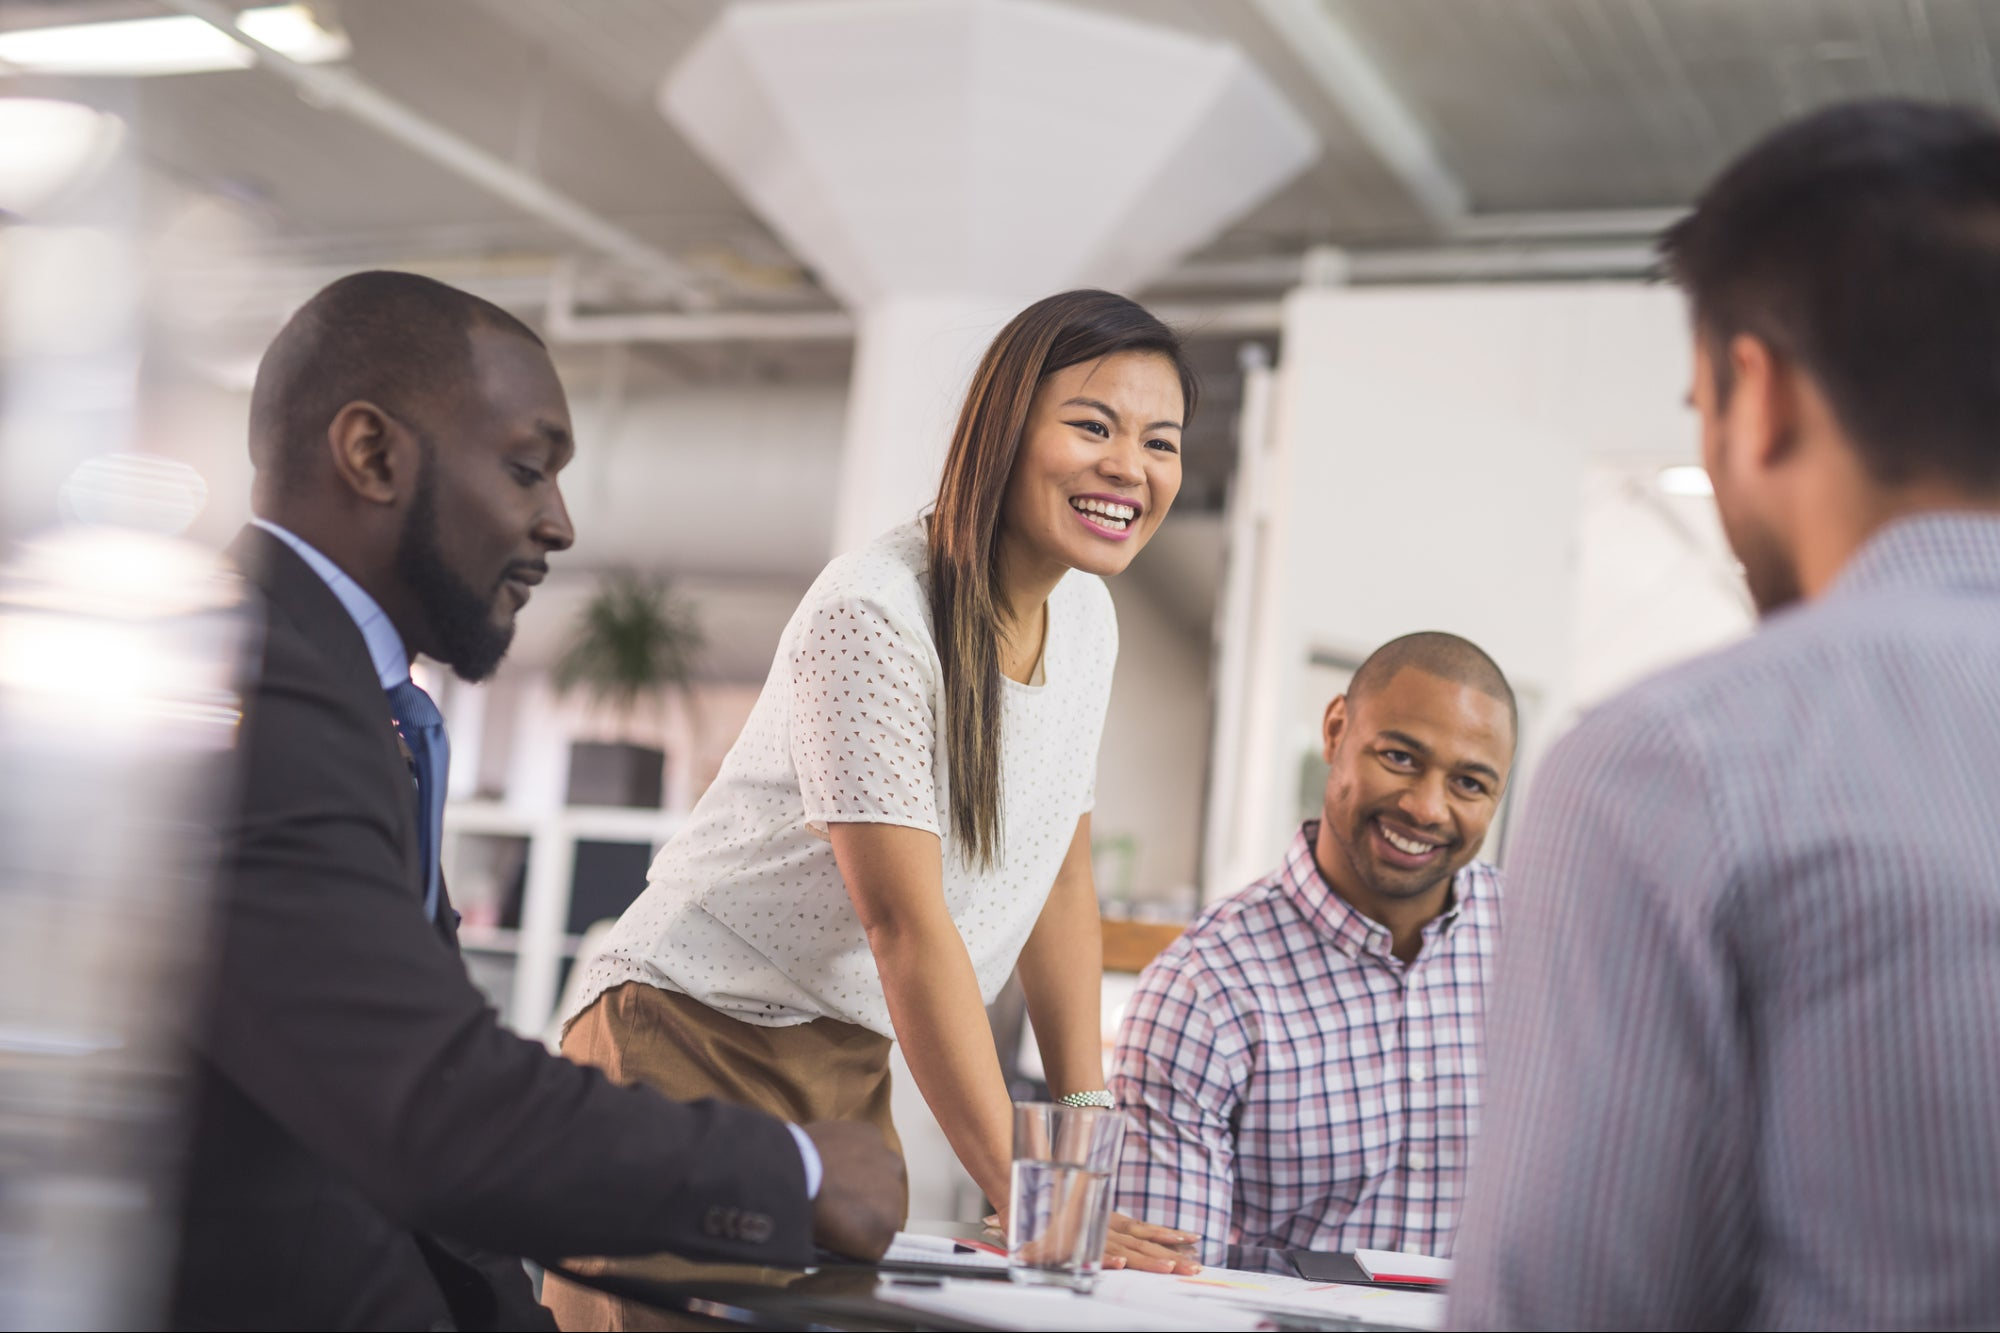 7 Ways Entrepreneurs Can Ensure Better Equality at Their Workplace